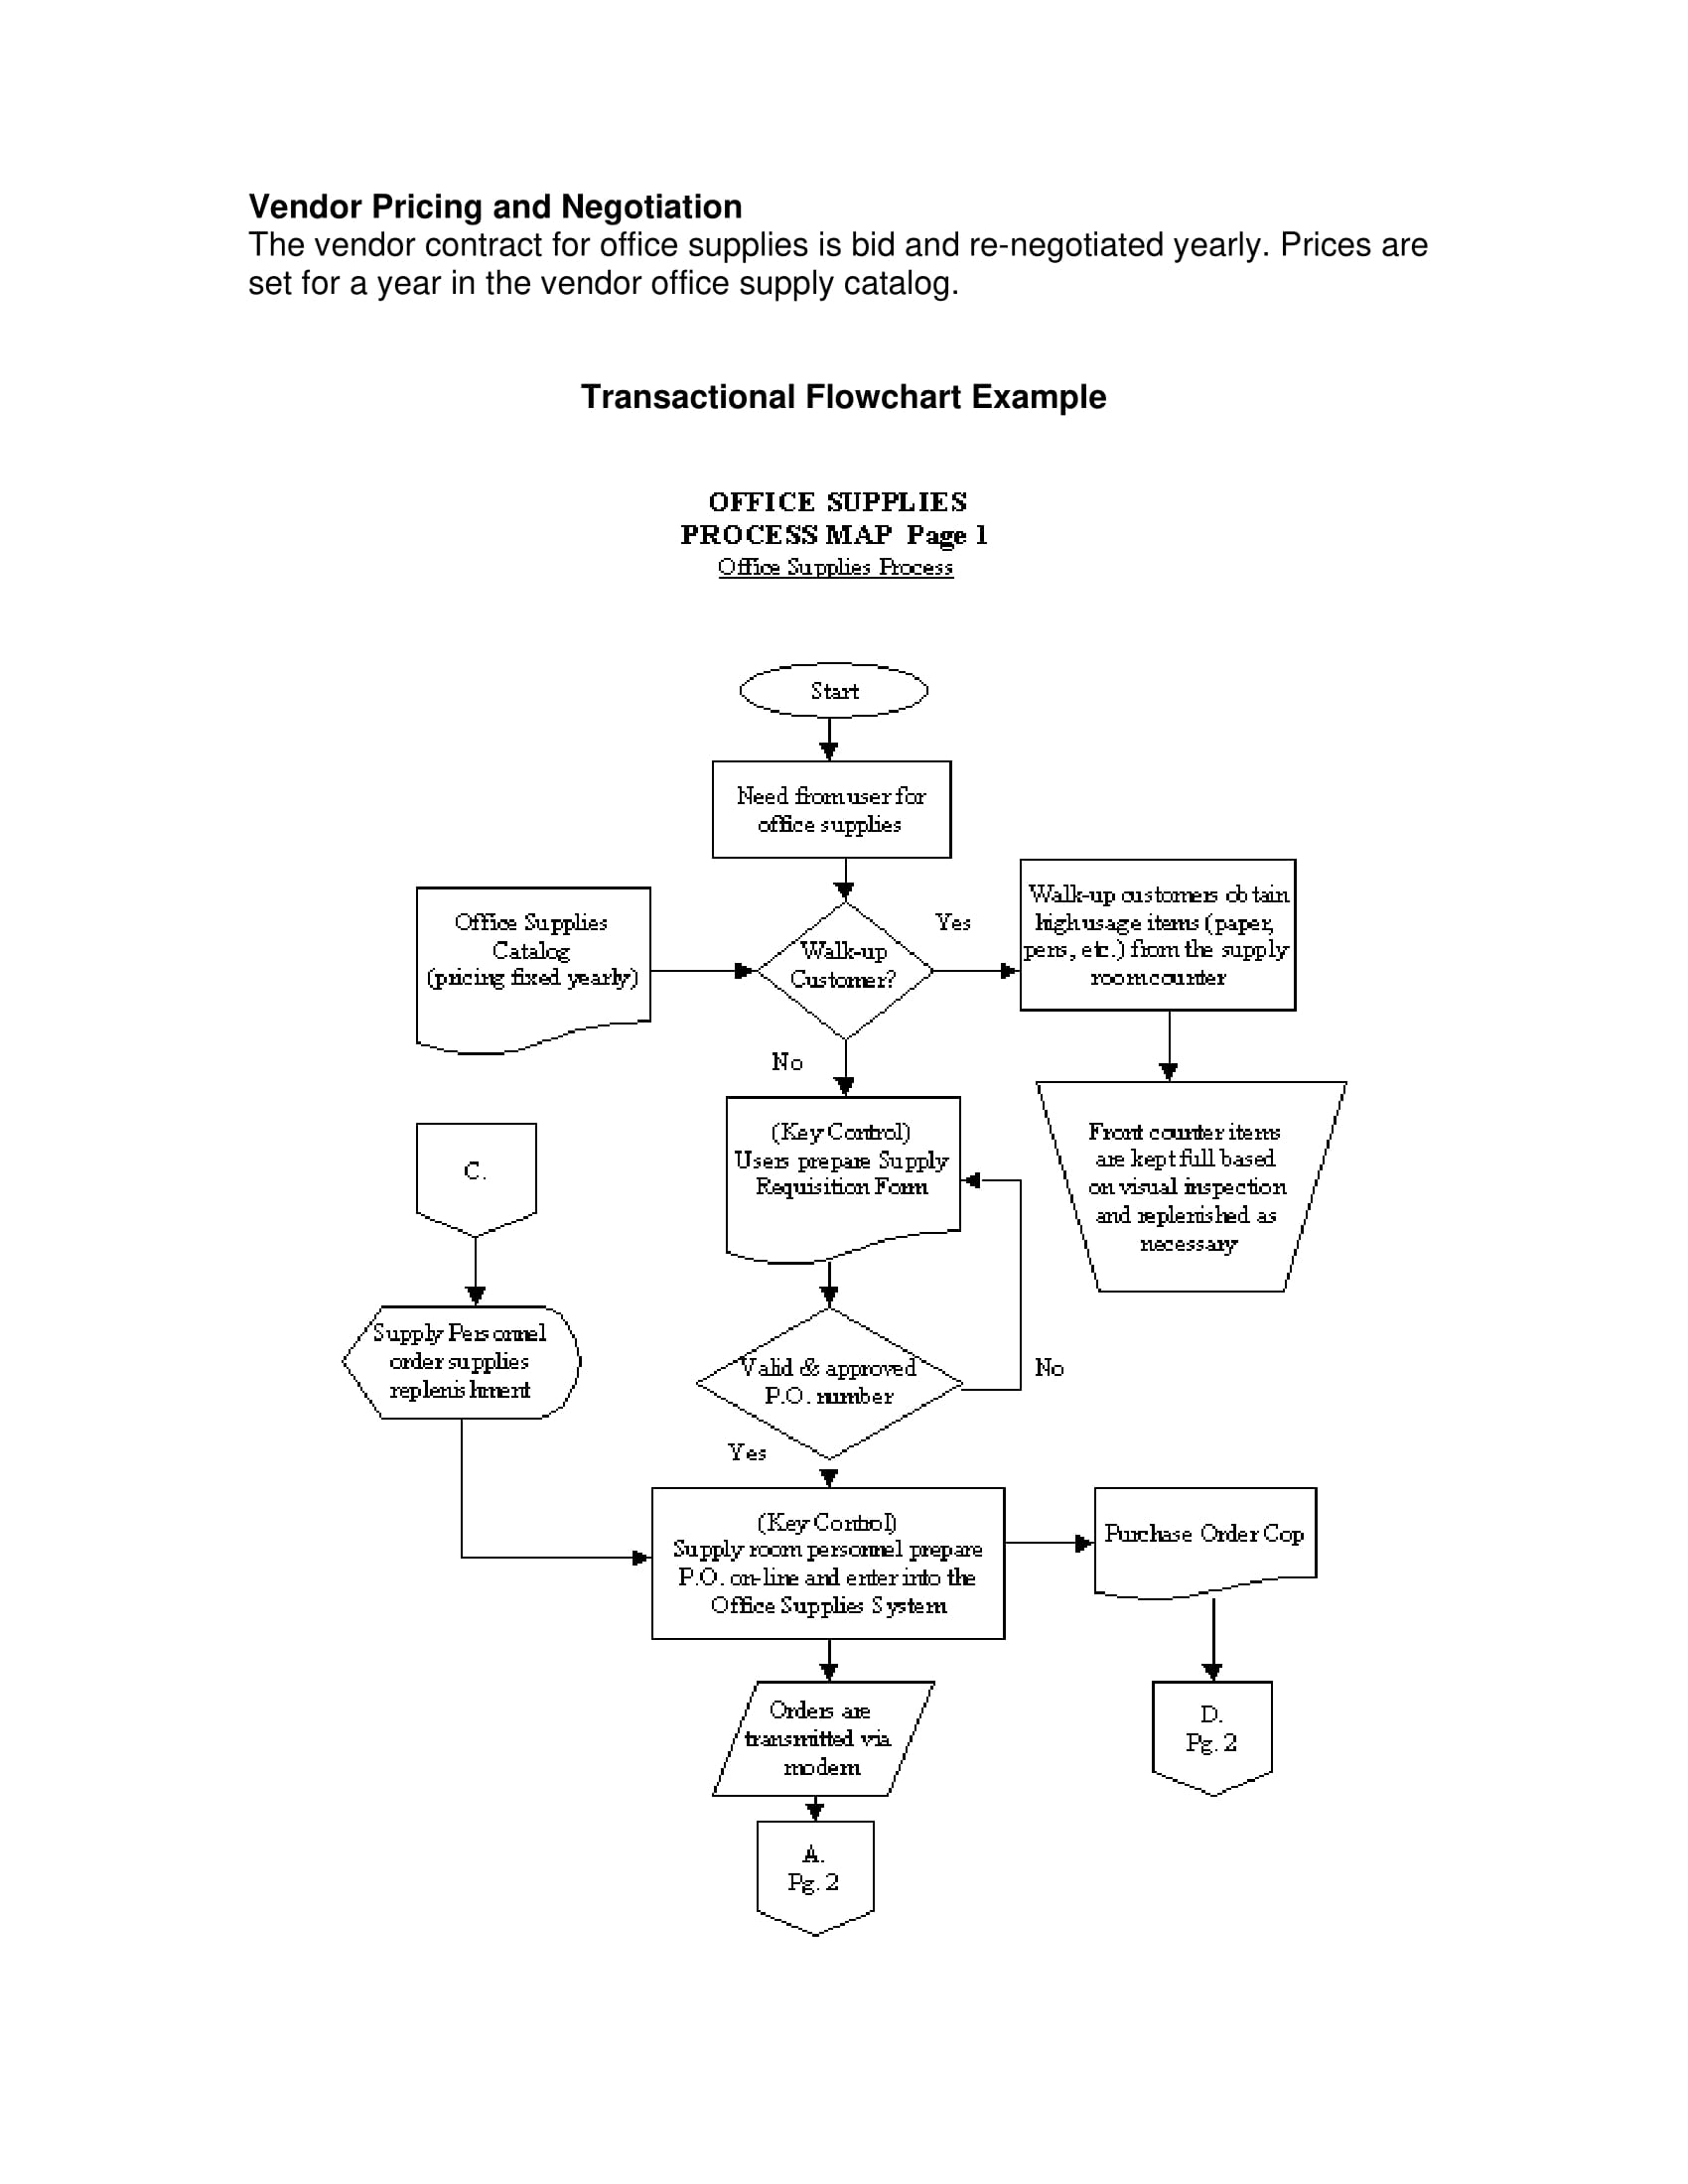 transactional flow chart example